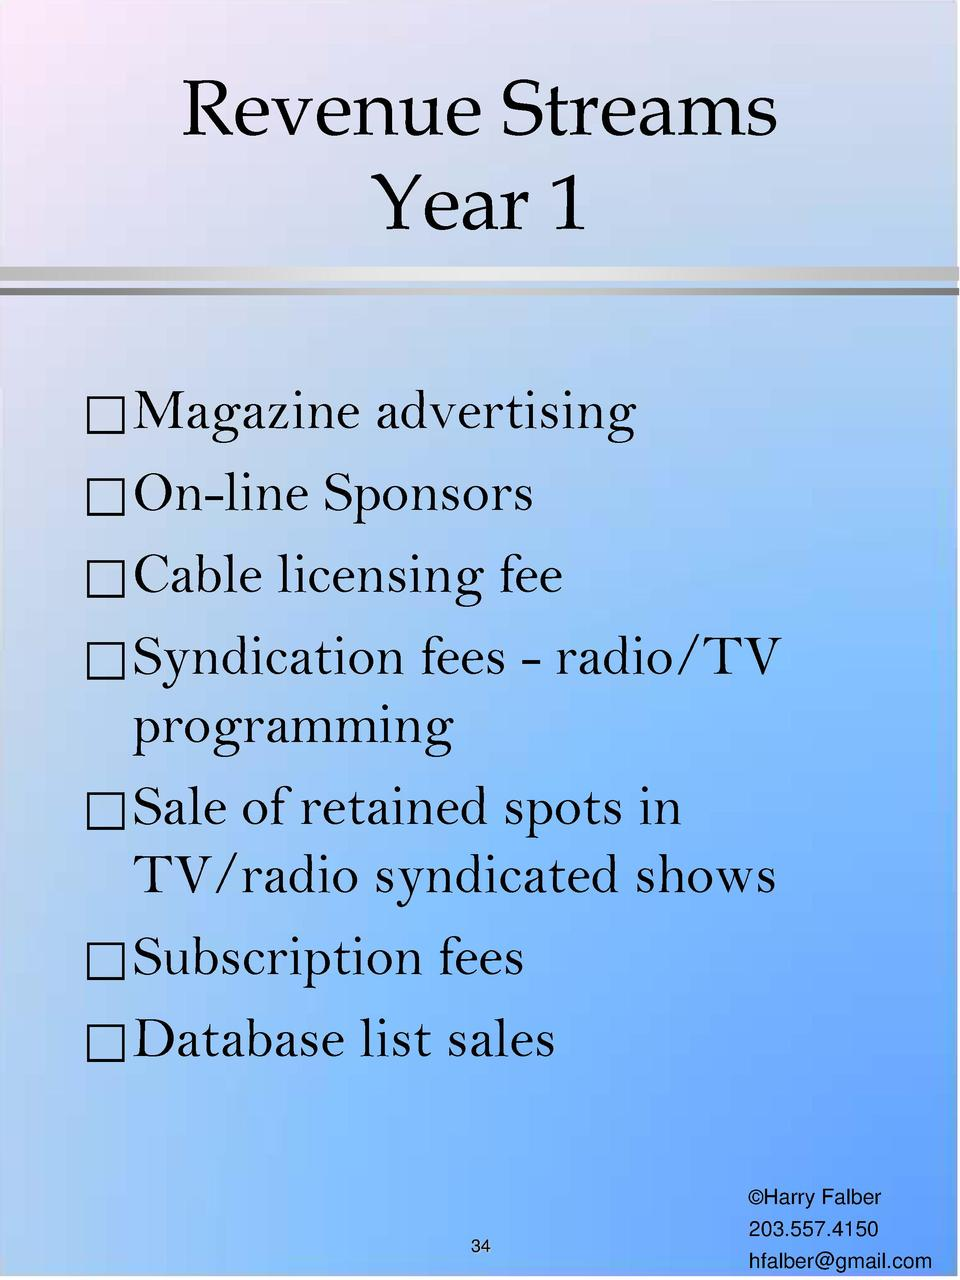 Revenue Streams Year 1     Magazine  advertising     On-line Sponsors     Cable licensing fee     Syndication fees - radio...